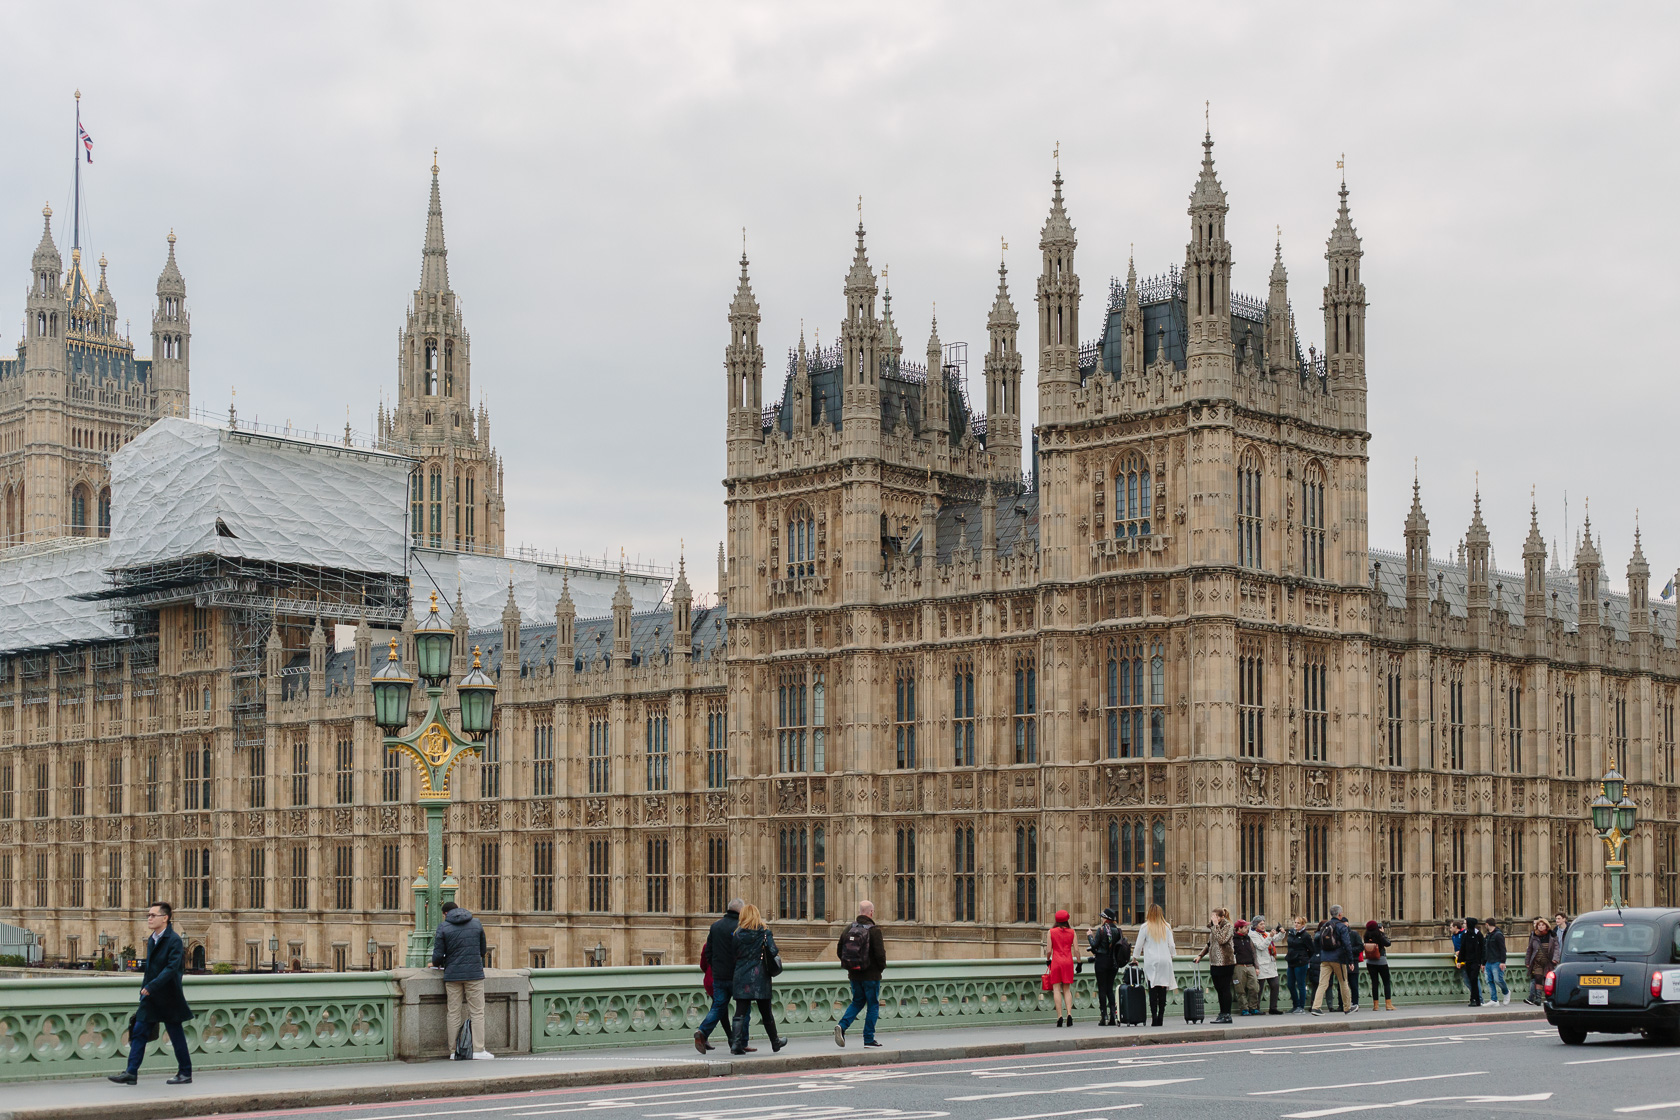 houses-of-parliament-london-4410